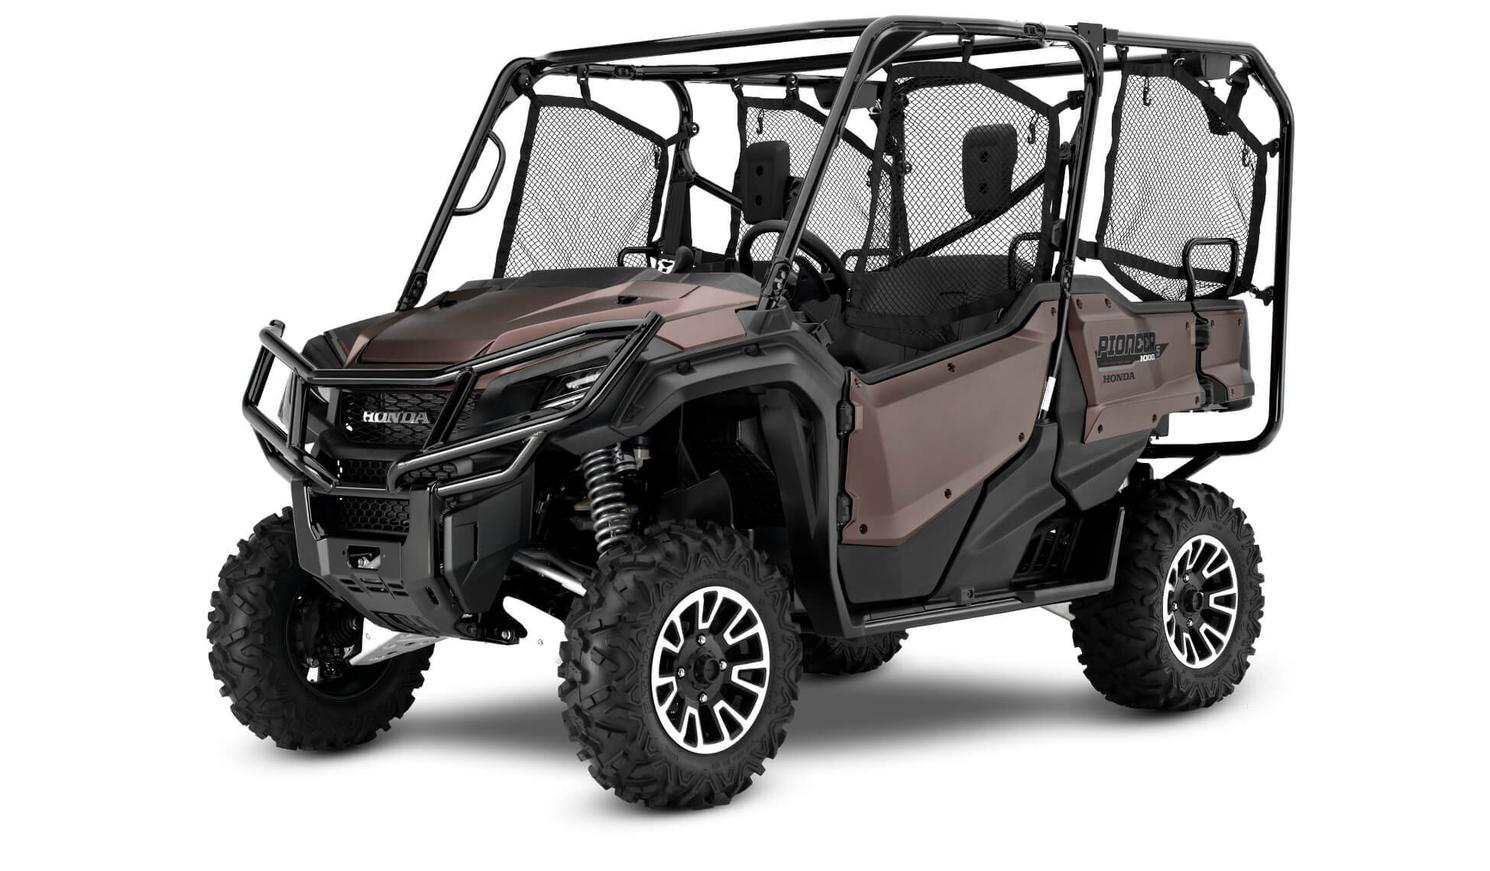 2021 Honda Pioneer 1000-5 Limited Frais inclus+Taxes